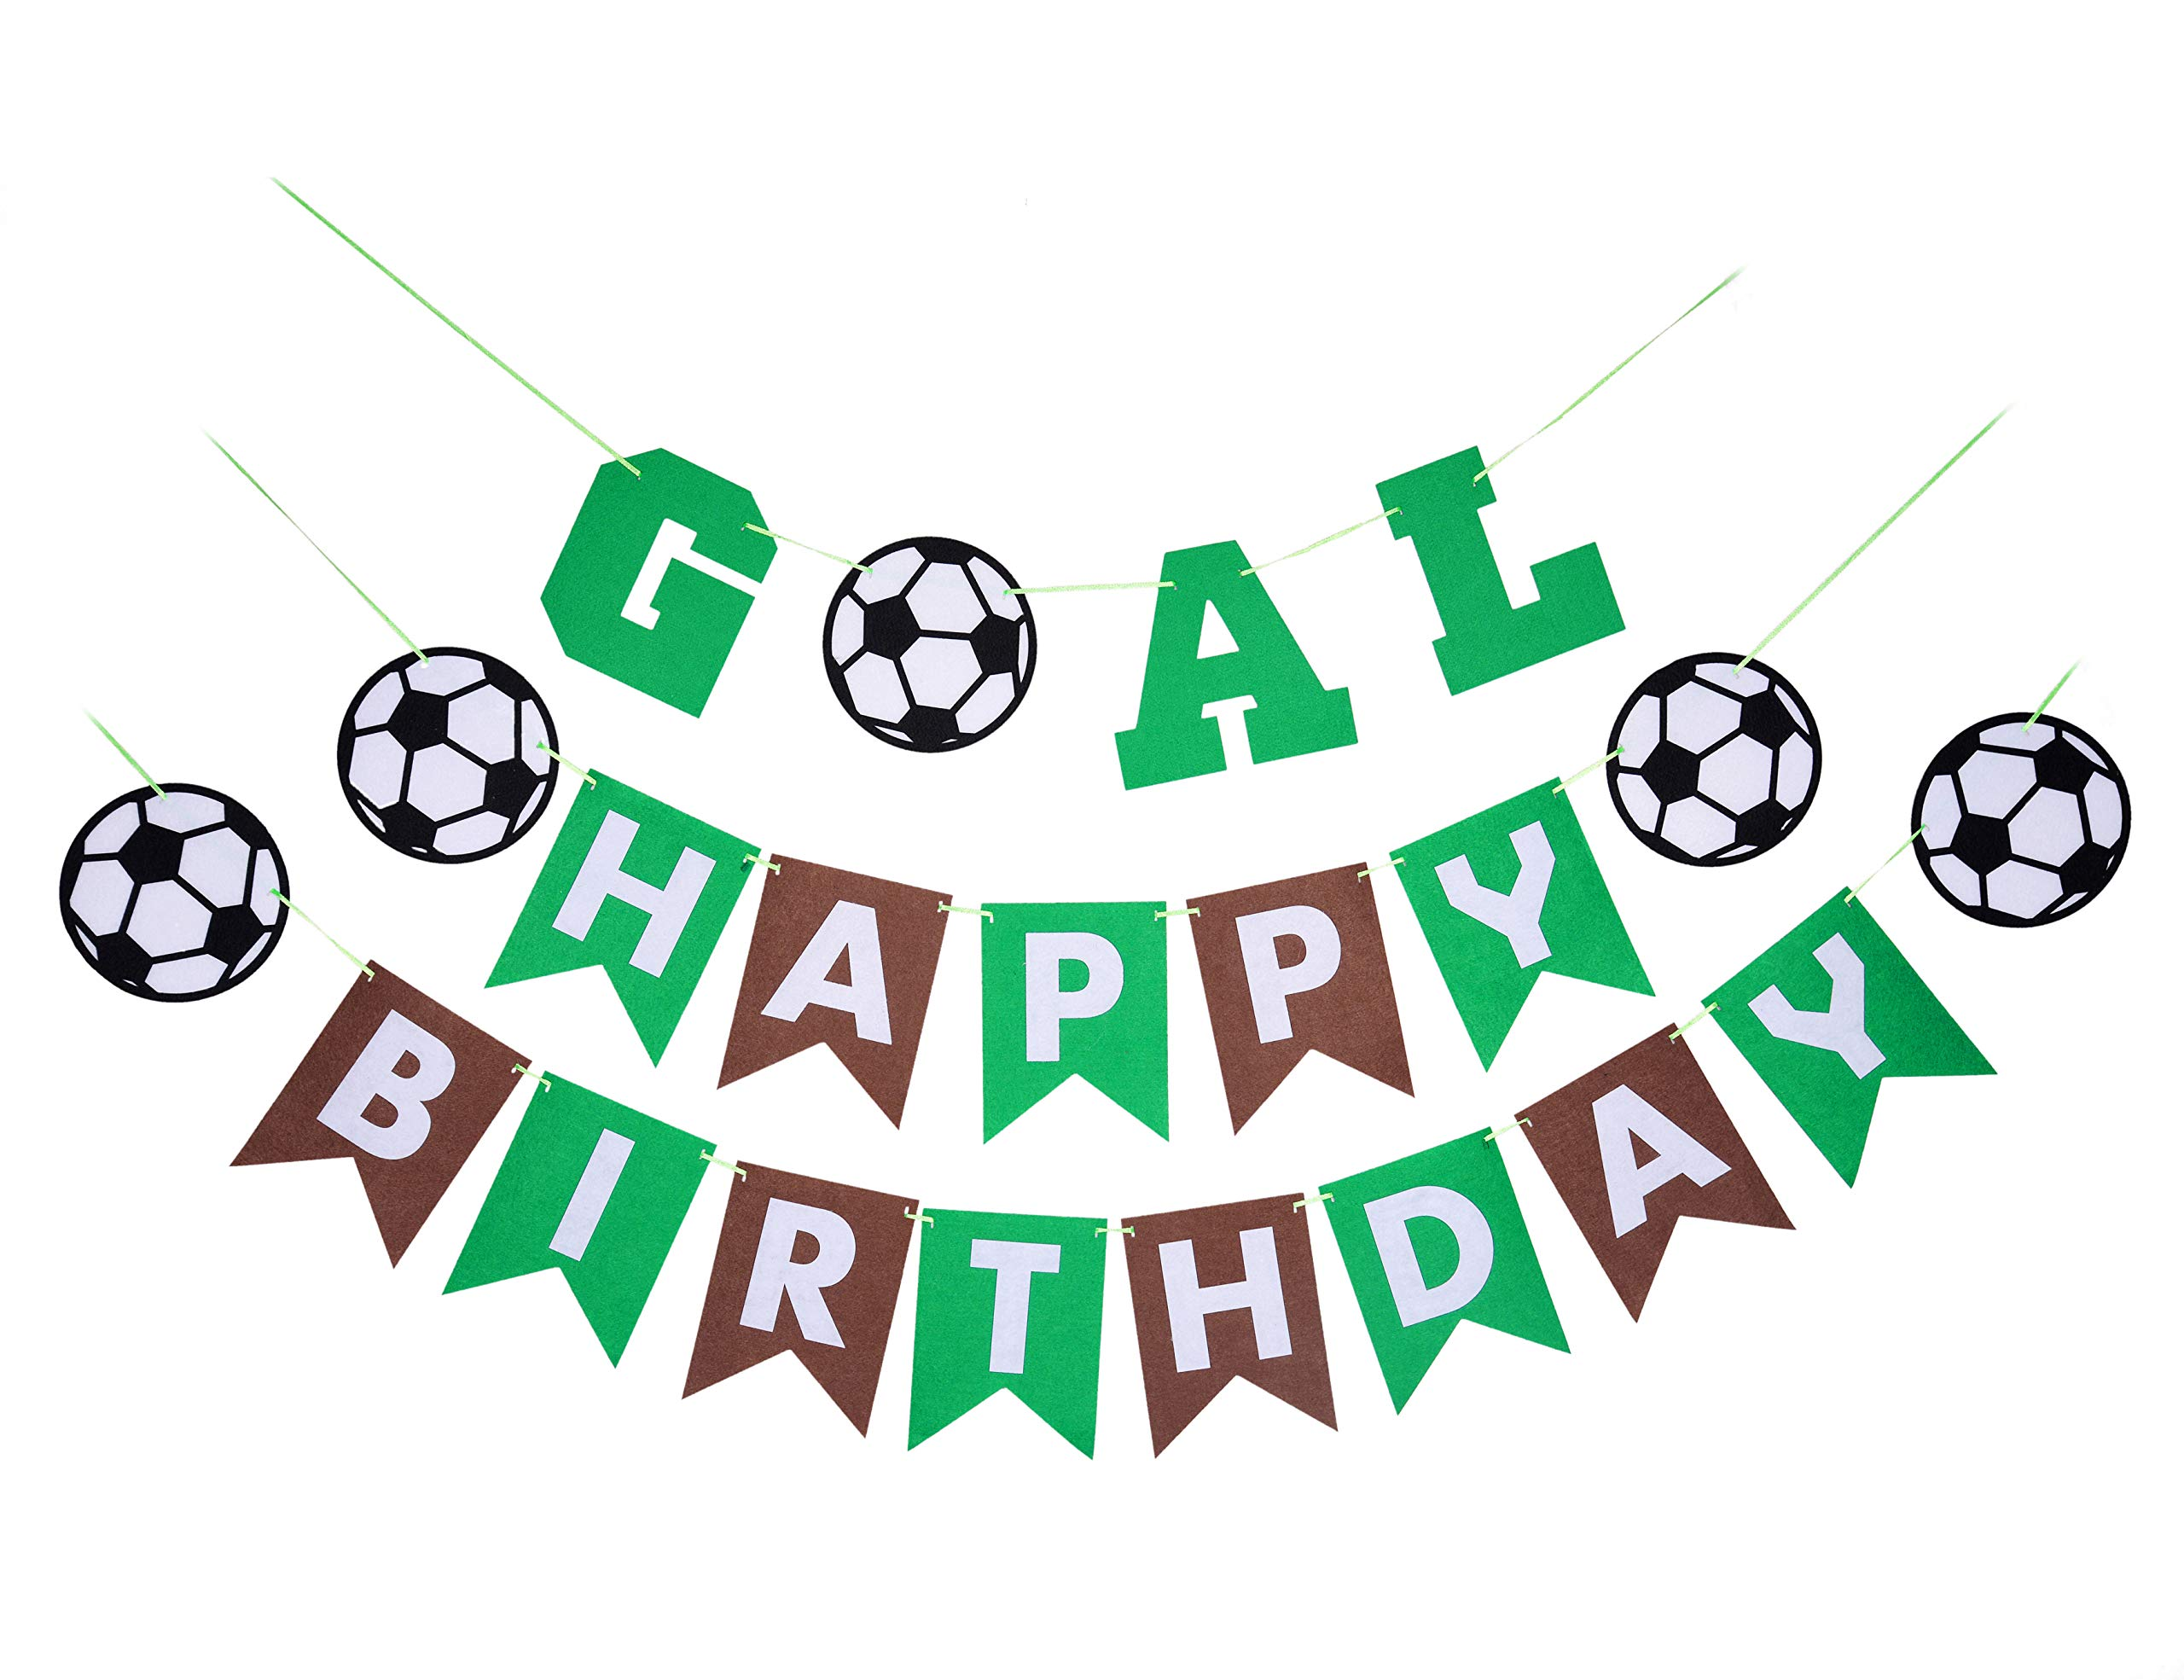 Back to School Soccer Theme Party Supplies Kit-1 Happy Birthday Banner(Green and Coffee) and 1 GOAL banner-Decorations and Favors for Kids Boys Girls Sports Party Wall Decor